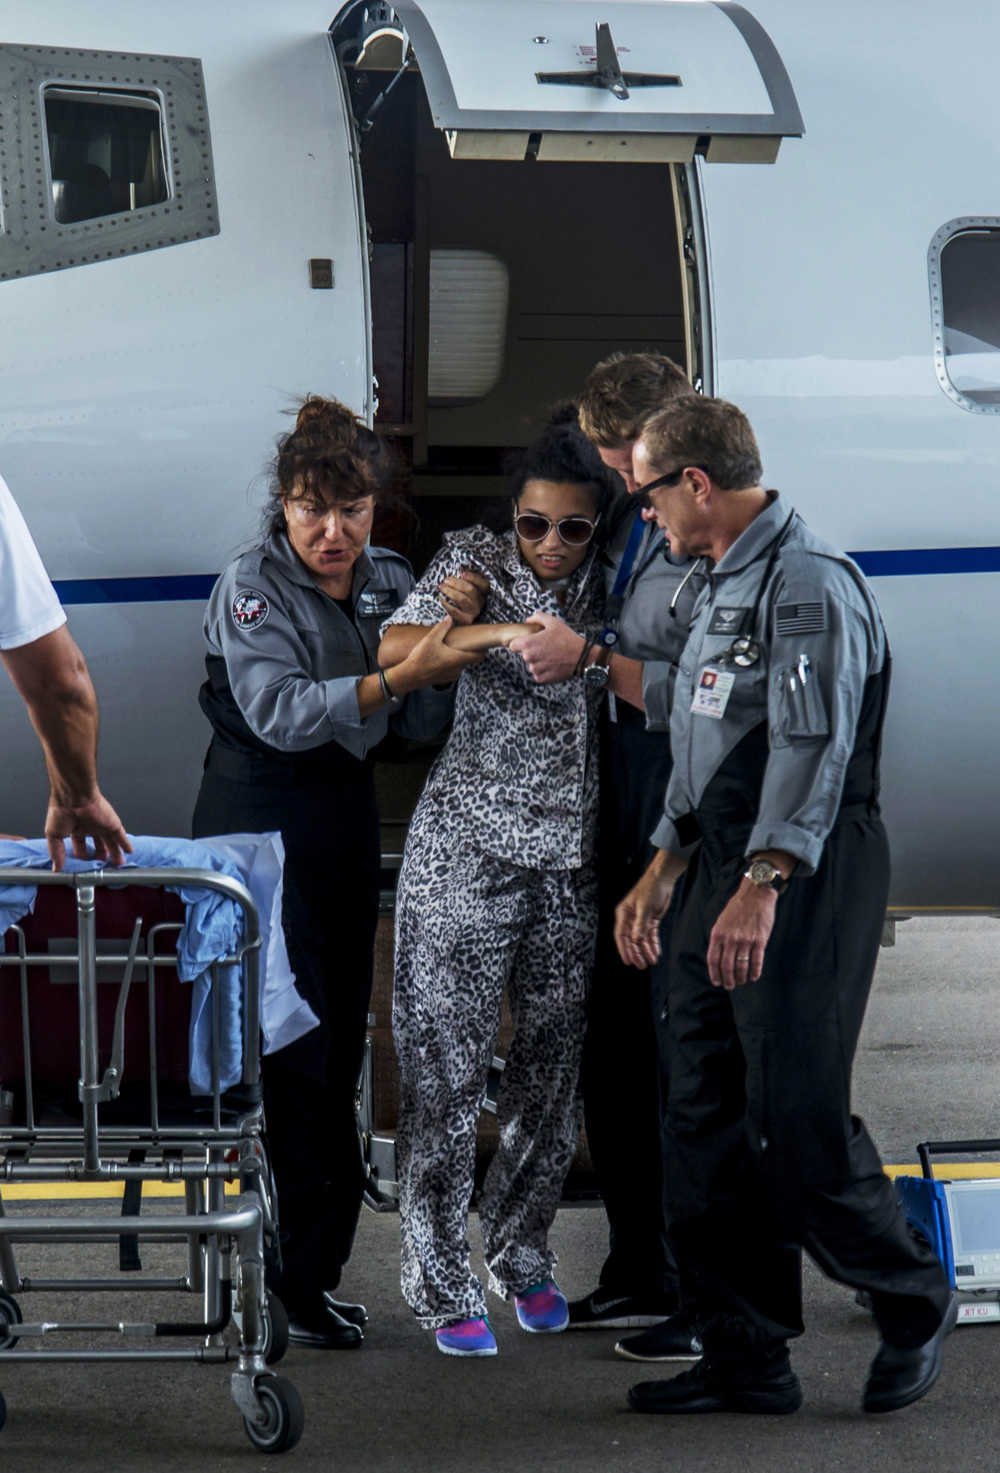 USF student Barbara Jimenez, 22, is lifted after being airlifted from Cuba to Tampa International Airport Jet Center on Friday, Aug. 28. She was stranded at a Cuban hospital after a serious automobile accident because her family's health insurance won't pay for a medical airlift. JET ICU did the airlift in a air ambulance for free.